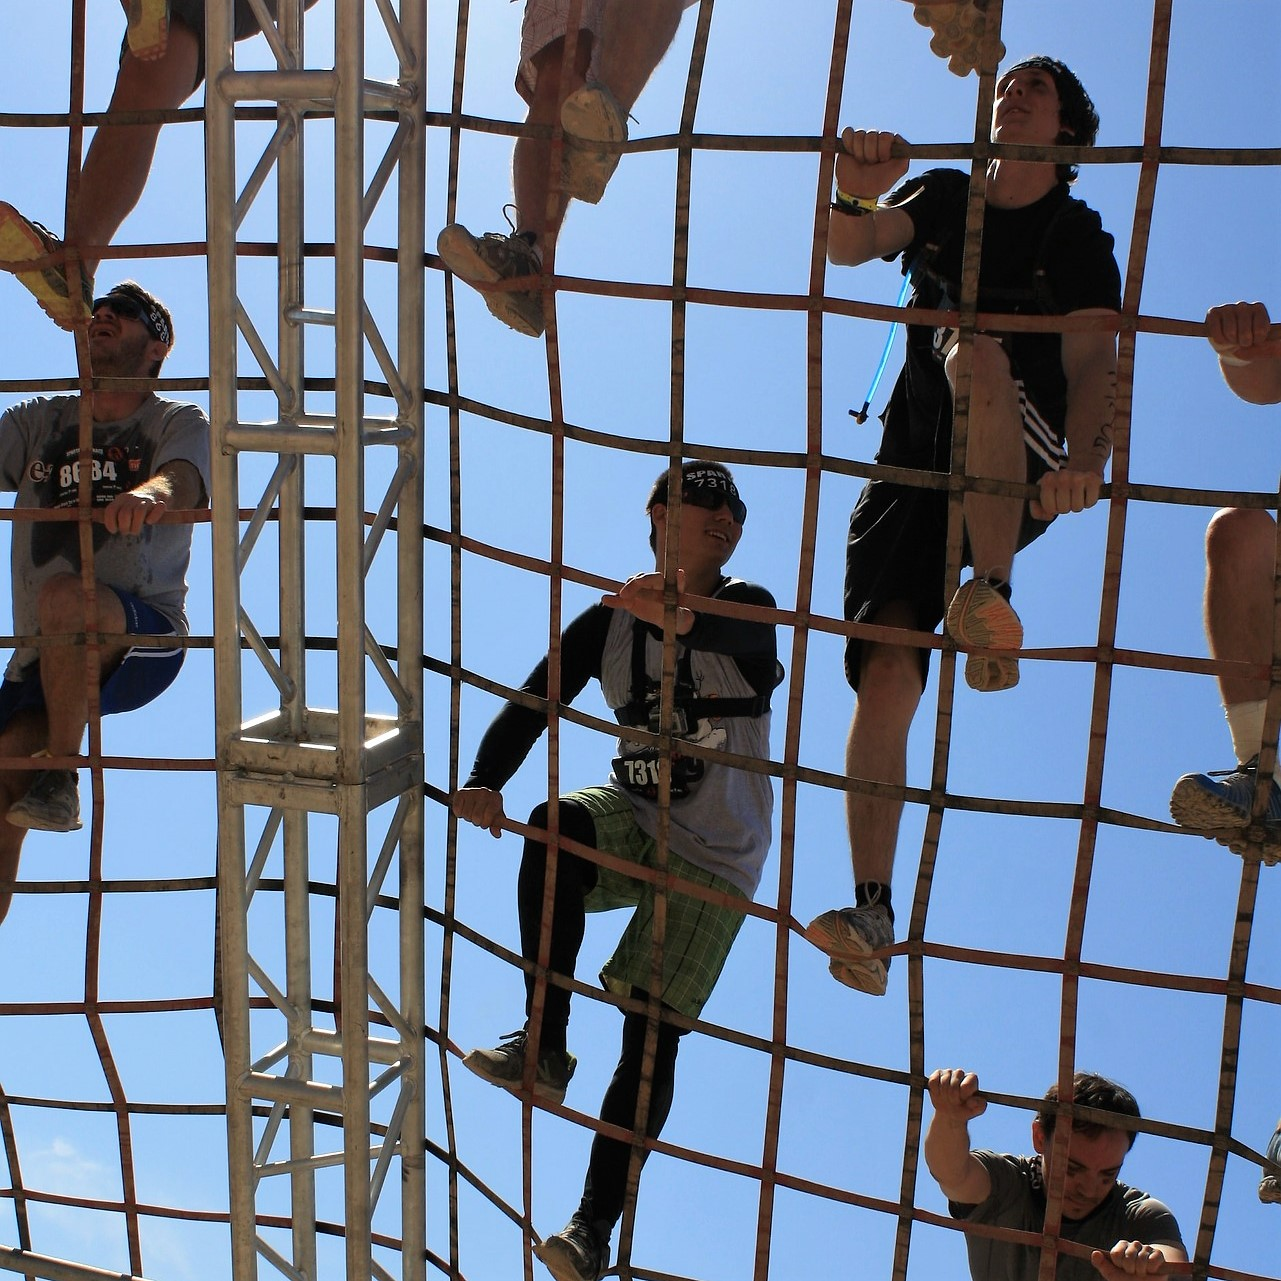 A group of people climbing on a net